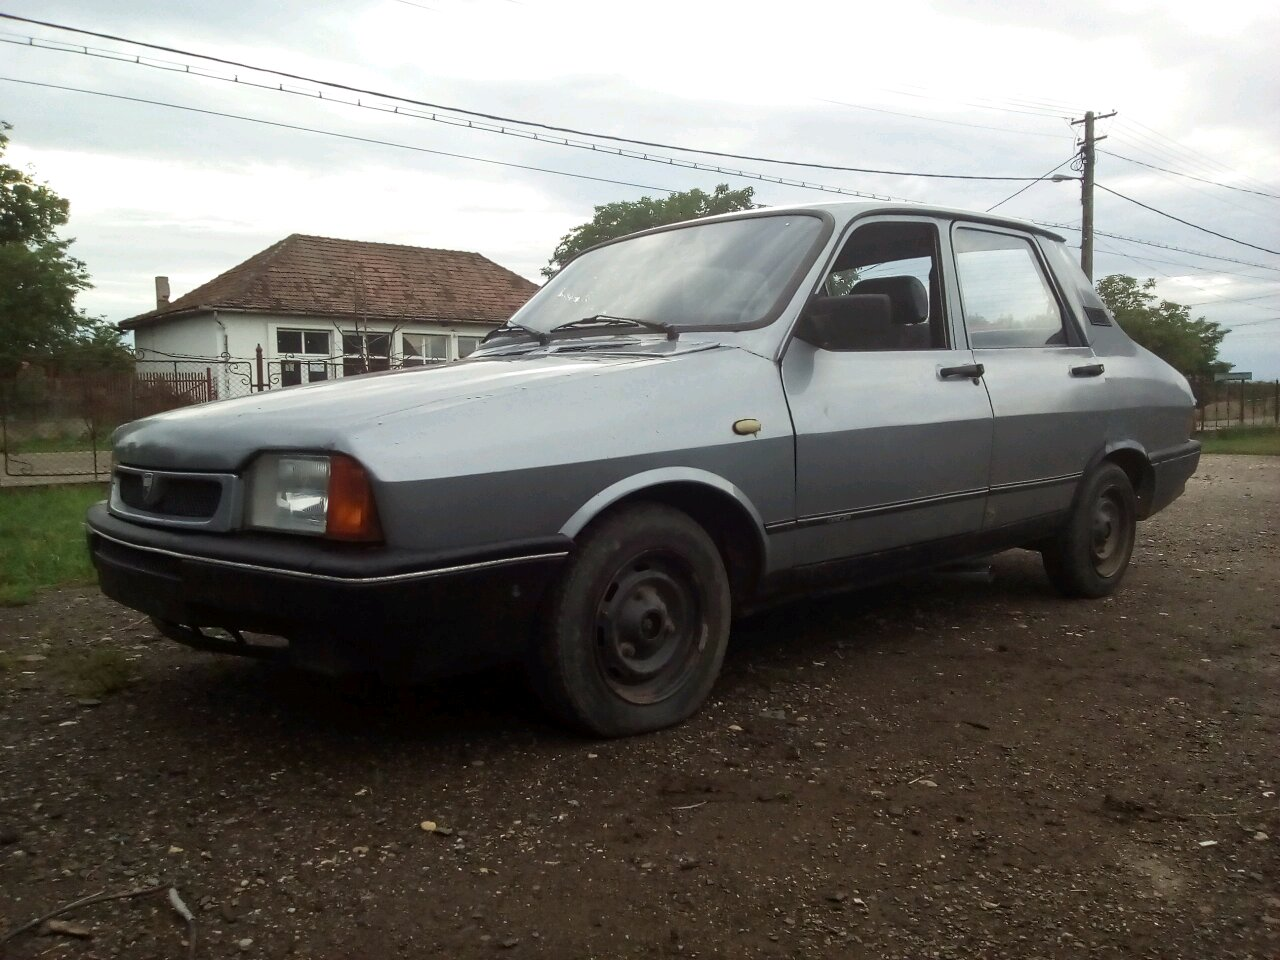 1996 Dacia With Side Exhaust Pipes Not Straight Pipe It Has That